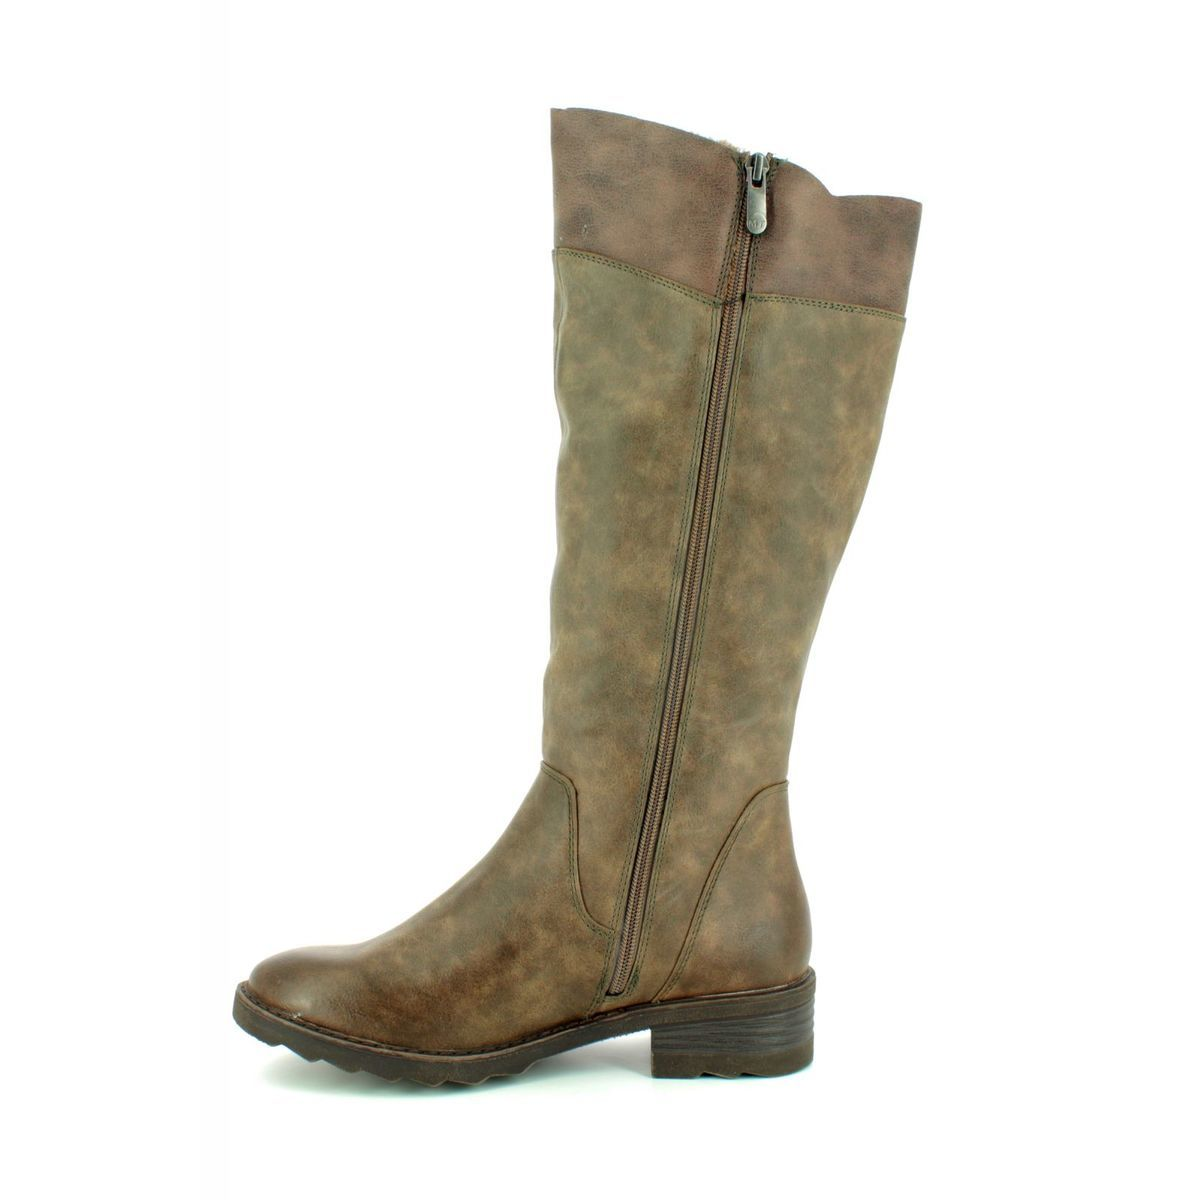 5626f41dd09 Marco Tozzi Knee-high Boots - Brown - 26639 21 358 DUSSI 85